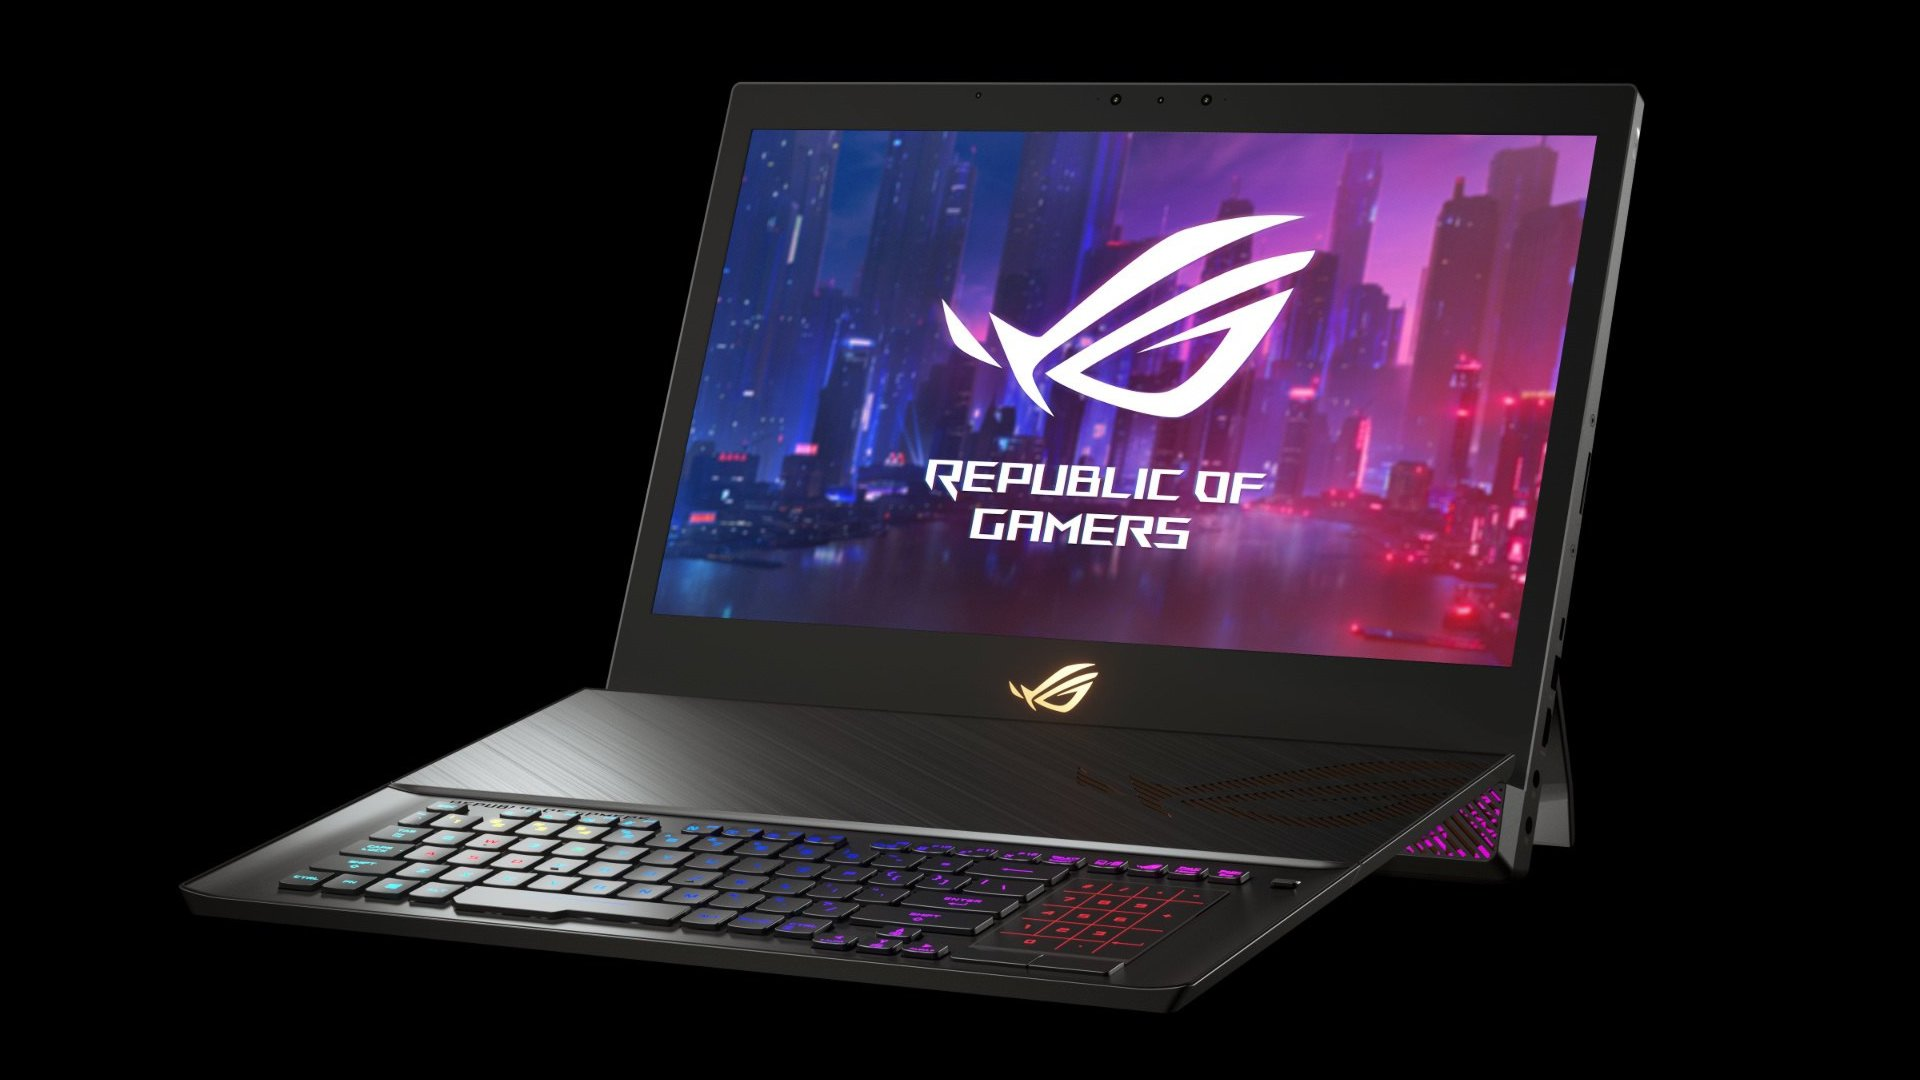 The new ROG Mothership in its standard laptop configuration